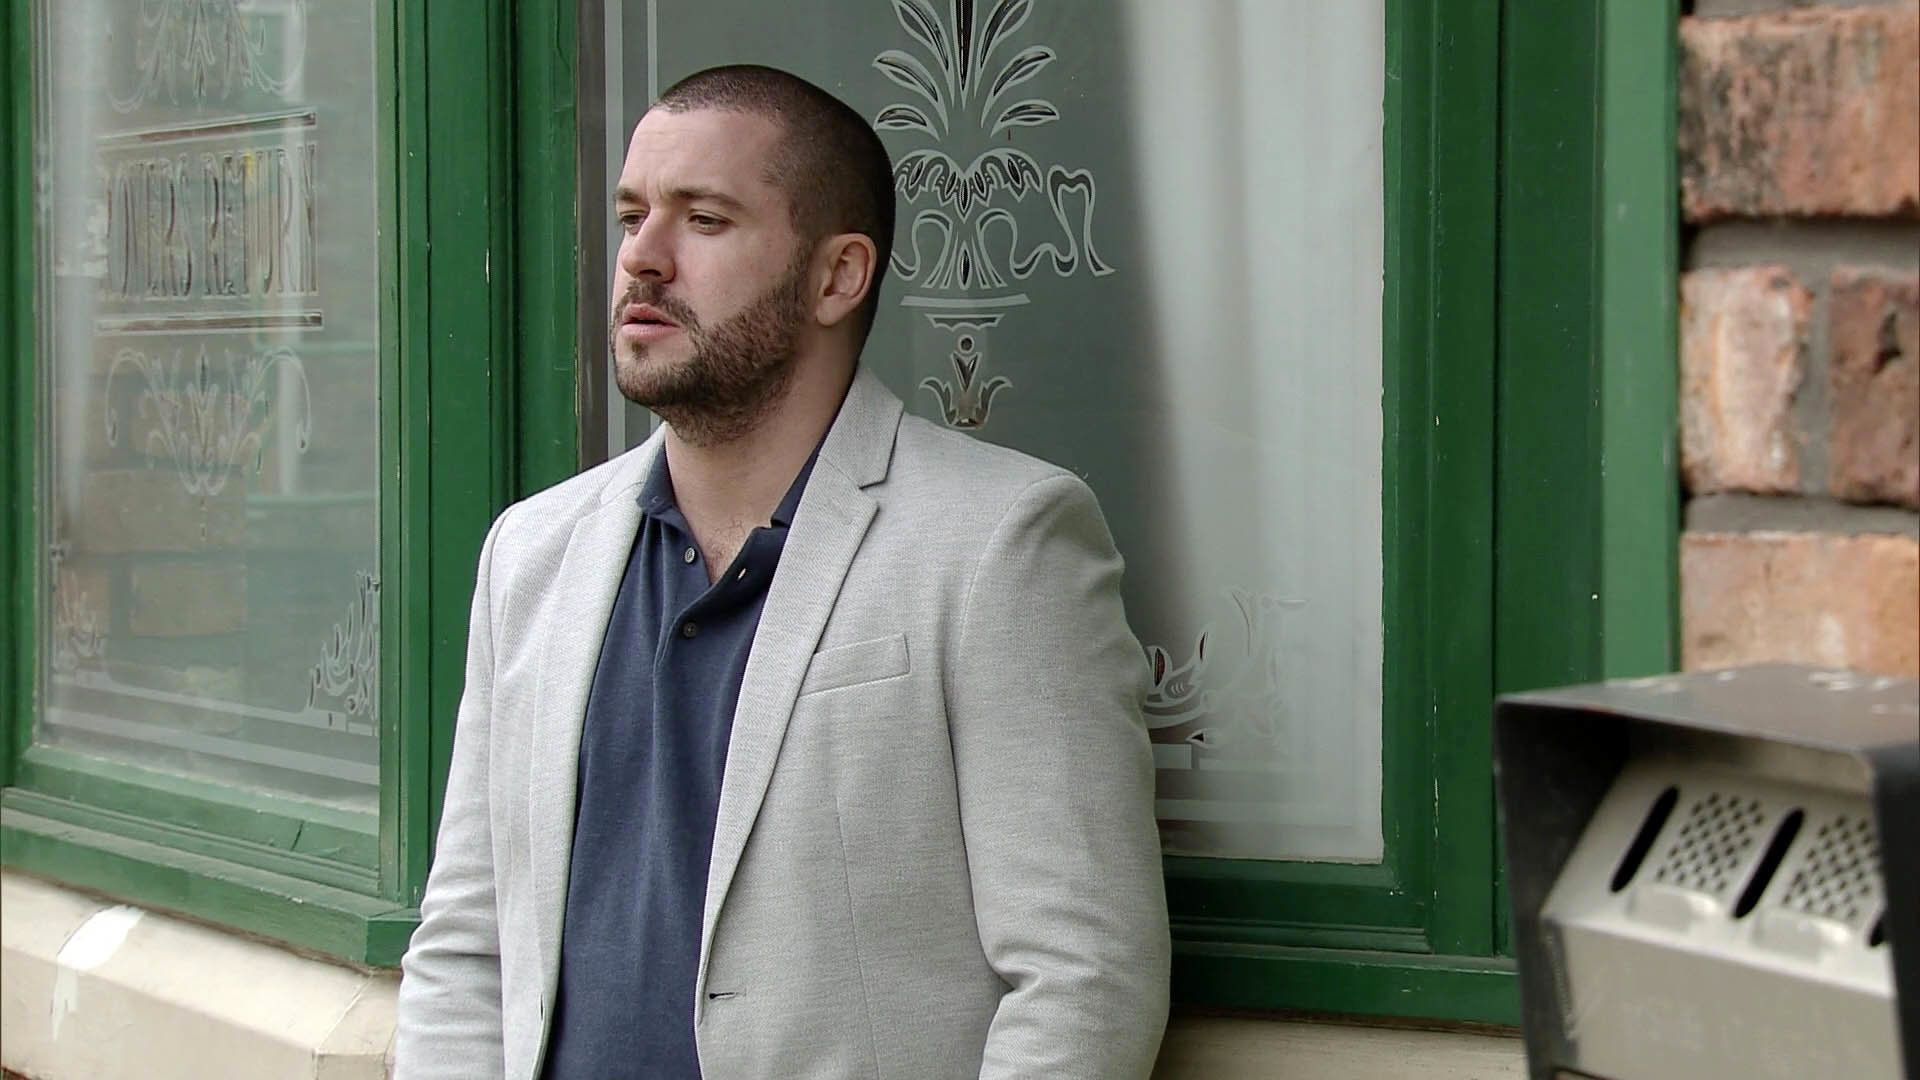 Coronation Street spoiler: Shayne Ward's exit as Aidan Connor revealed